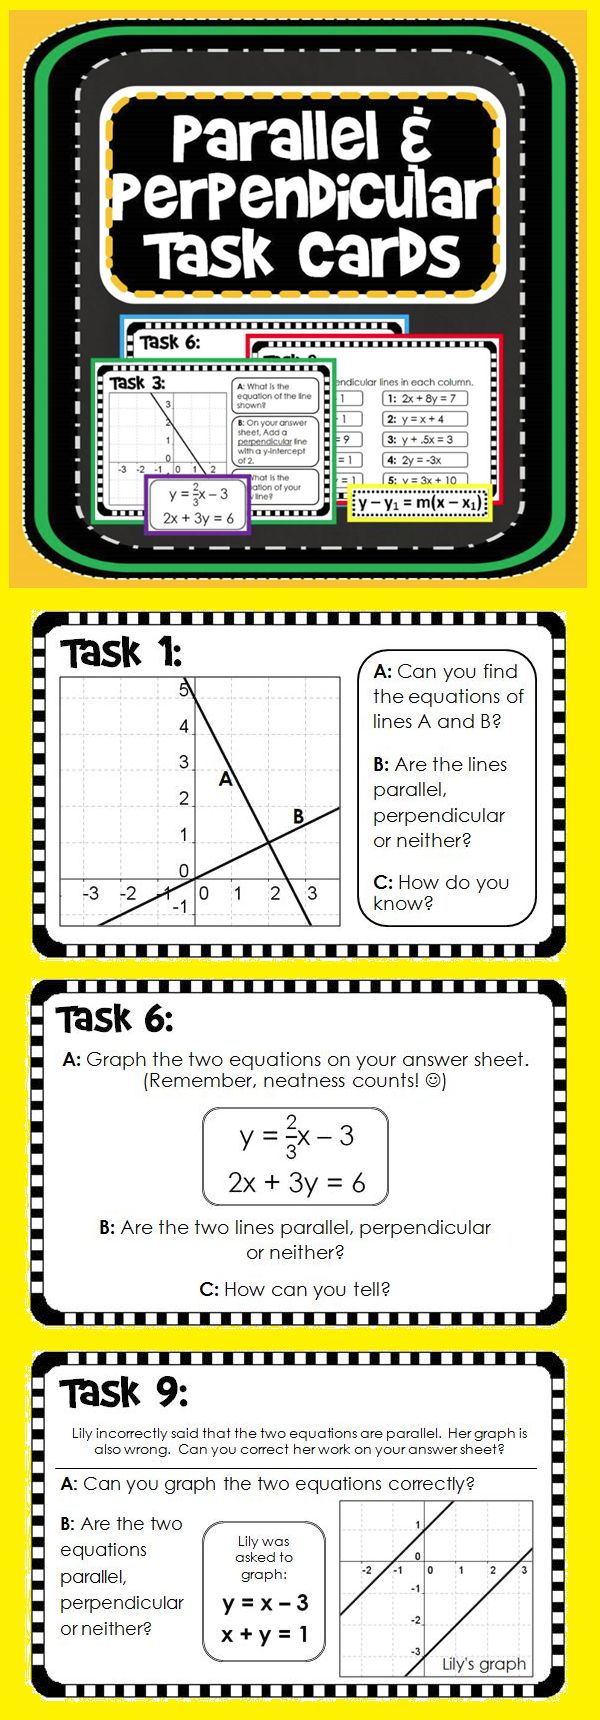 Students work through 30 questions on 10 task cards in this task cards activity. Questions range from finding the equations of graphs to determine if lines lines are parallel, perpendicular or neither to finding an error in a hypothetical student's work. A student answer sheet and answer key are included.